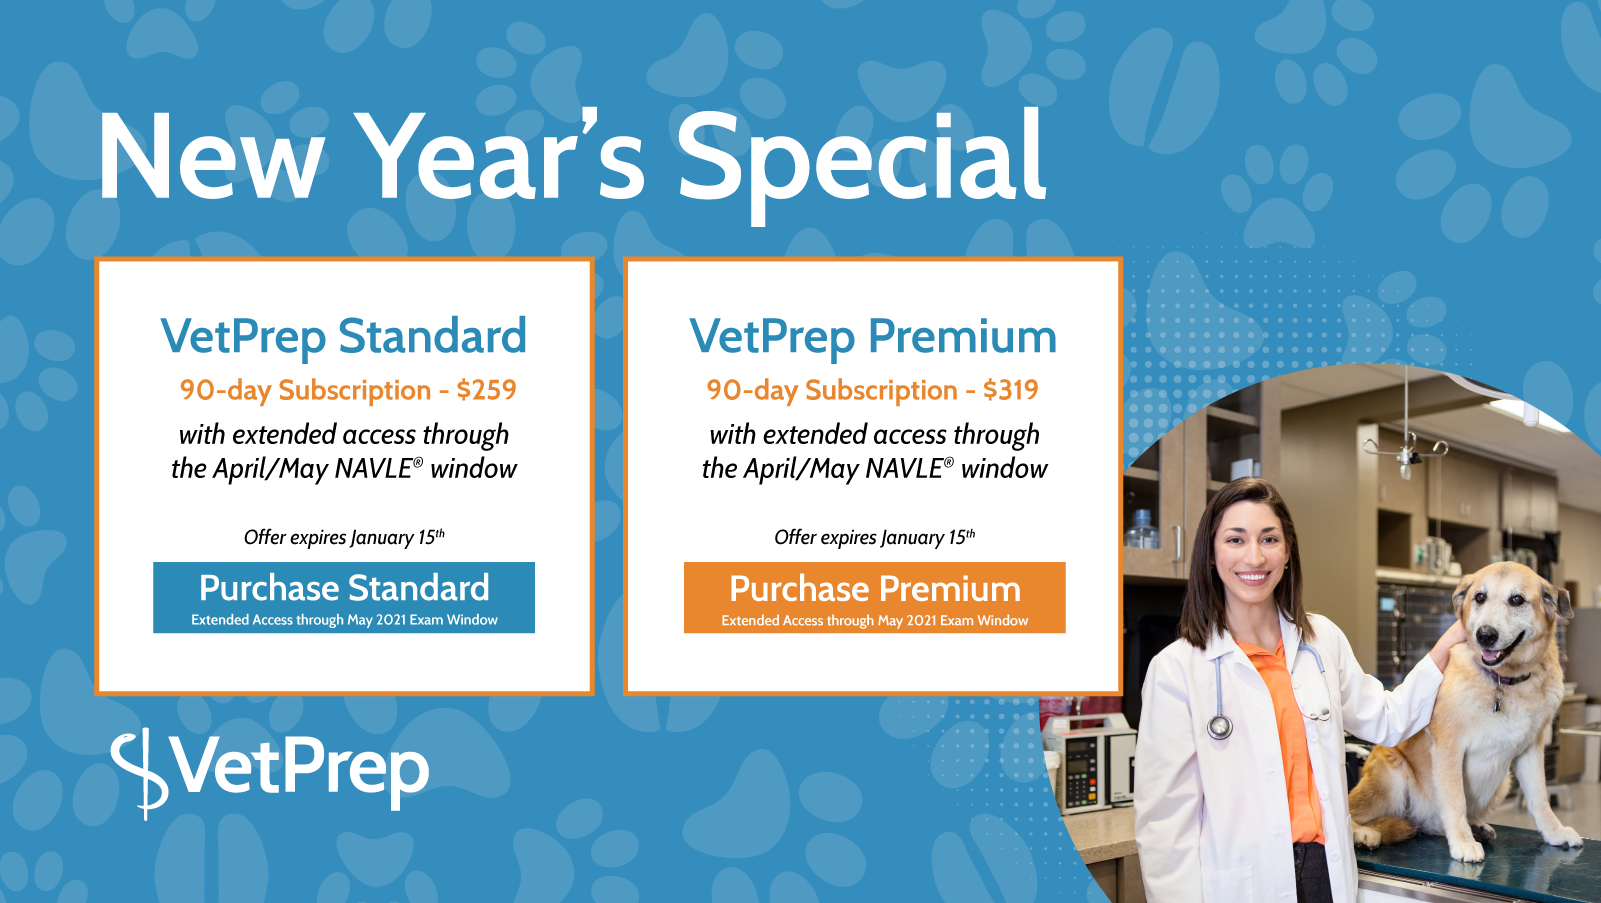 View the New Year's Special and Save!